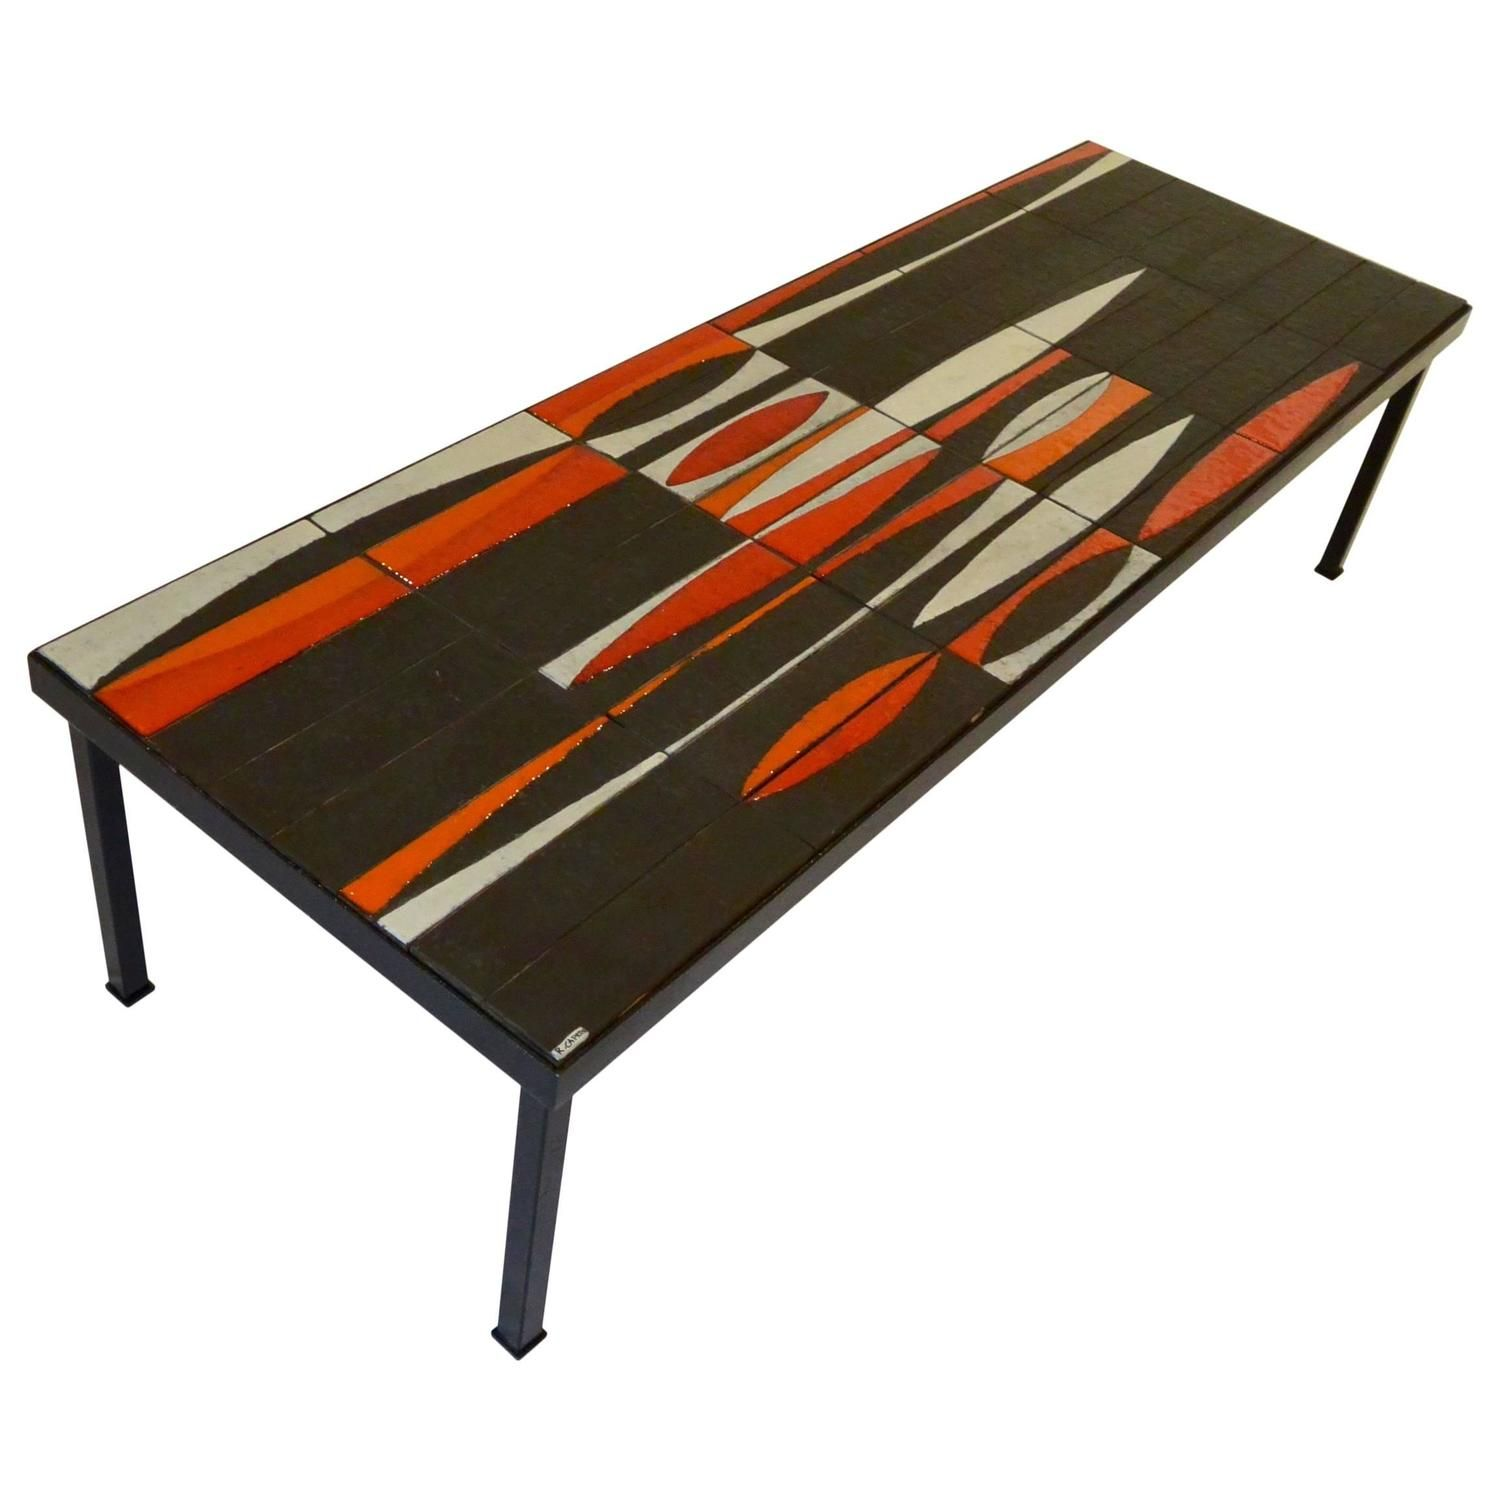 Iconic Coffee Table 'Navette' By Roger Capron, Circa 1950